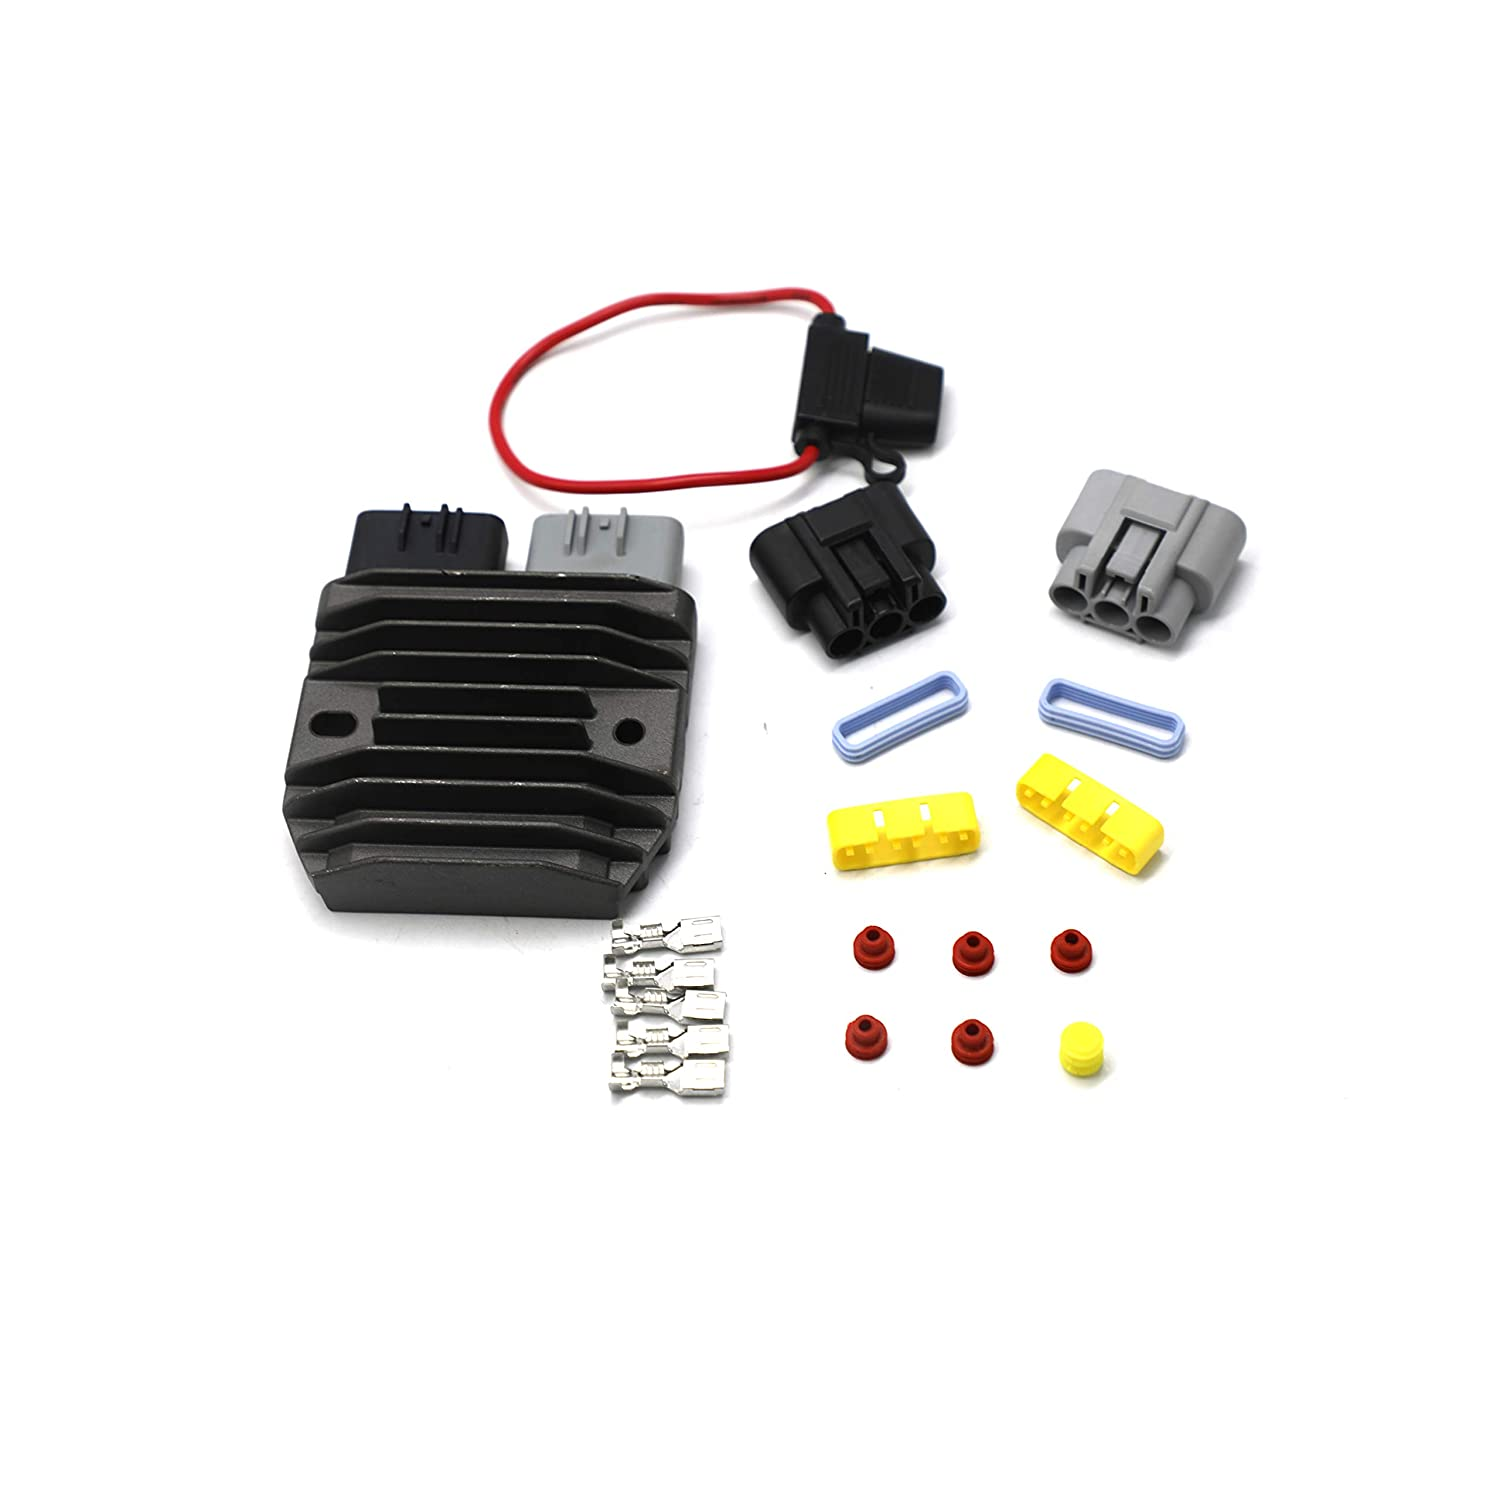 weishine 30A Motorcycle Regulator /& Rectifier Complete Kit For Shindengen Mosfet FH020AA Upgrade